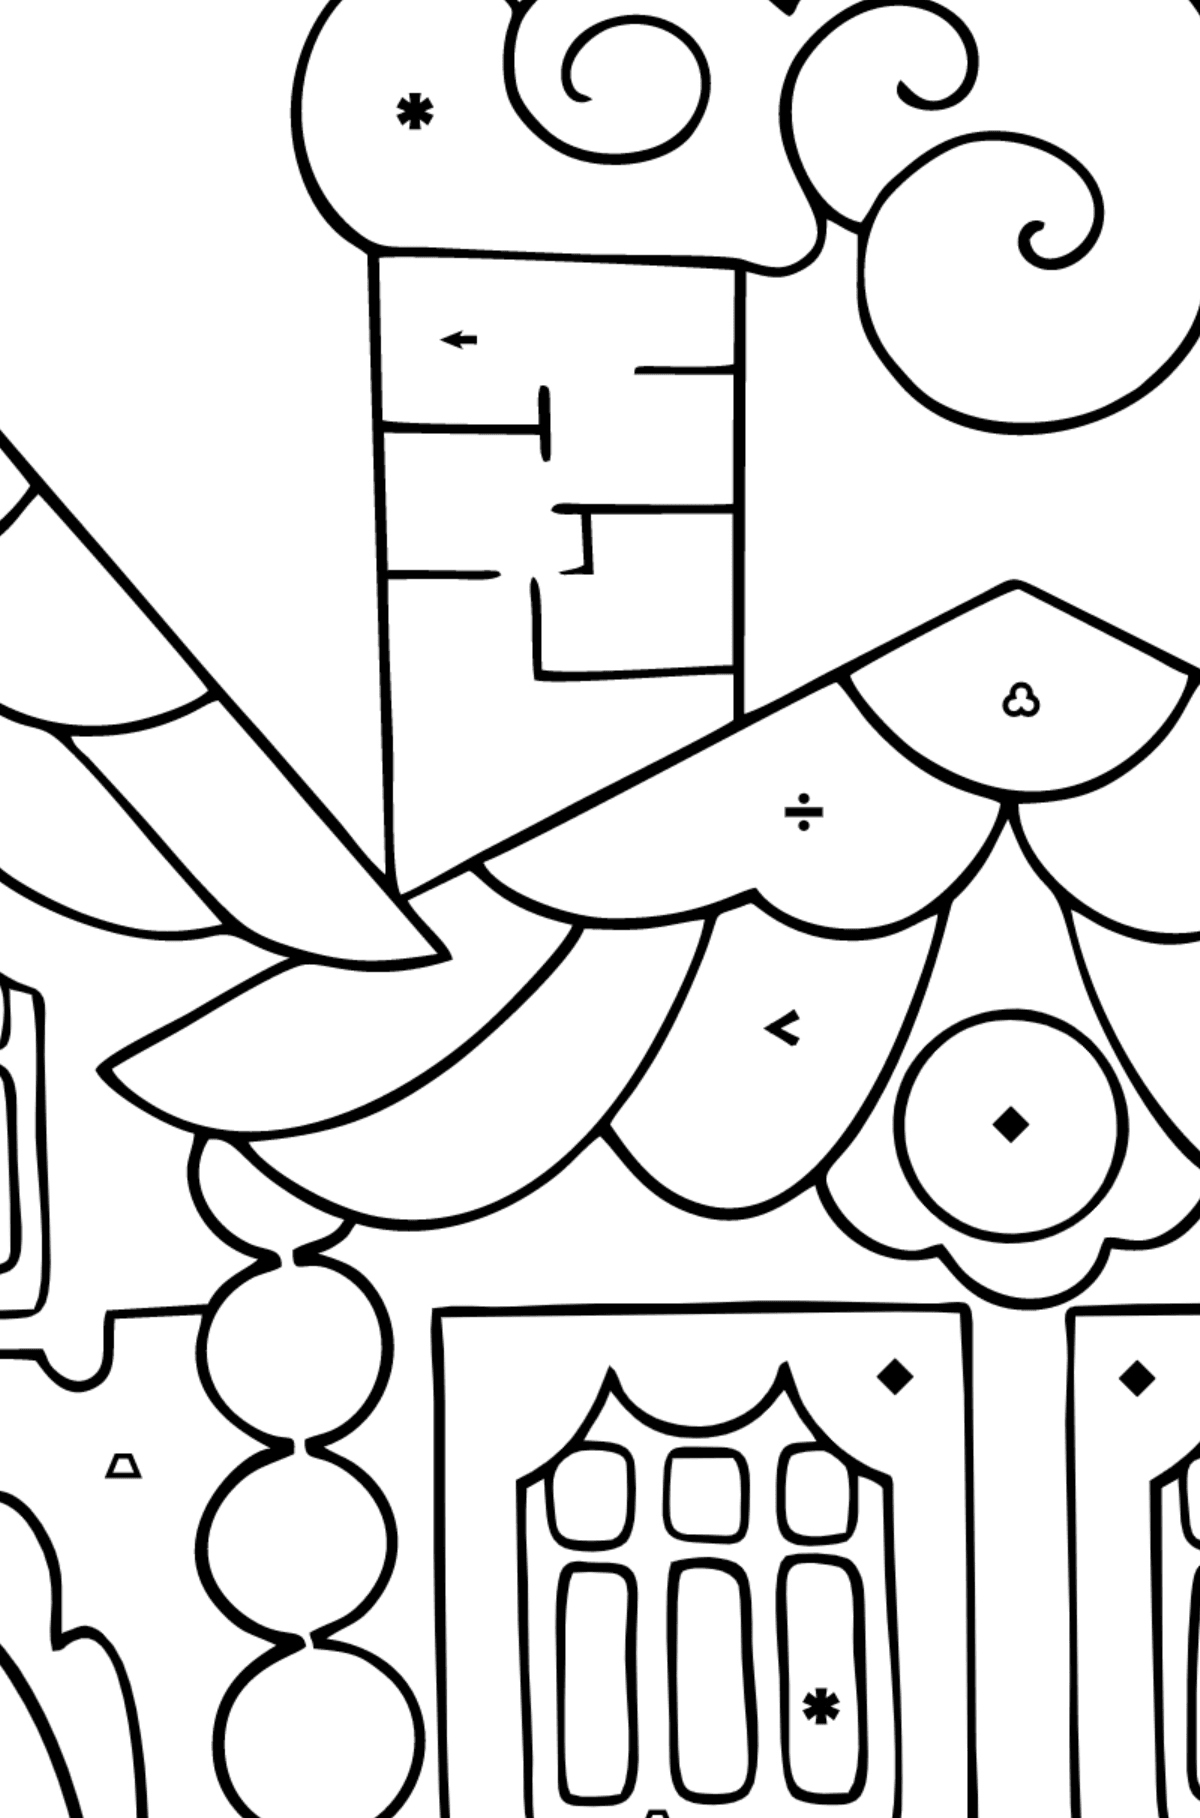 Coloring Page - A House in the Forest for Children  - Color by Symbols and Geometric Shapes